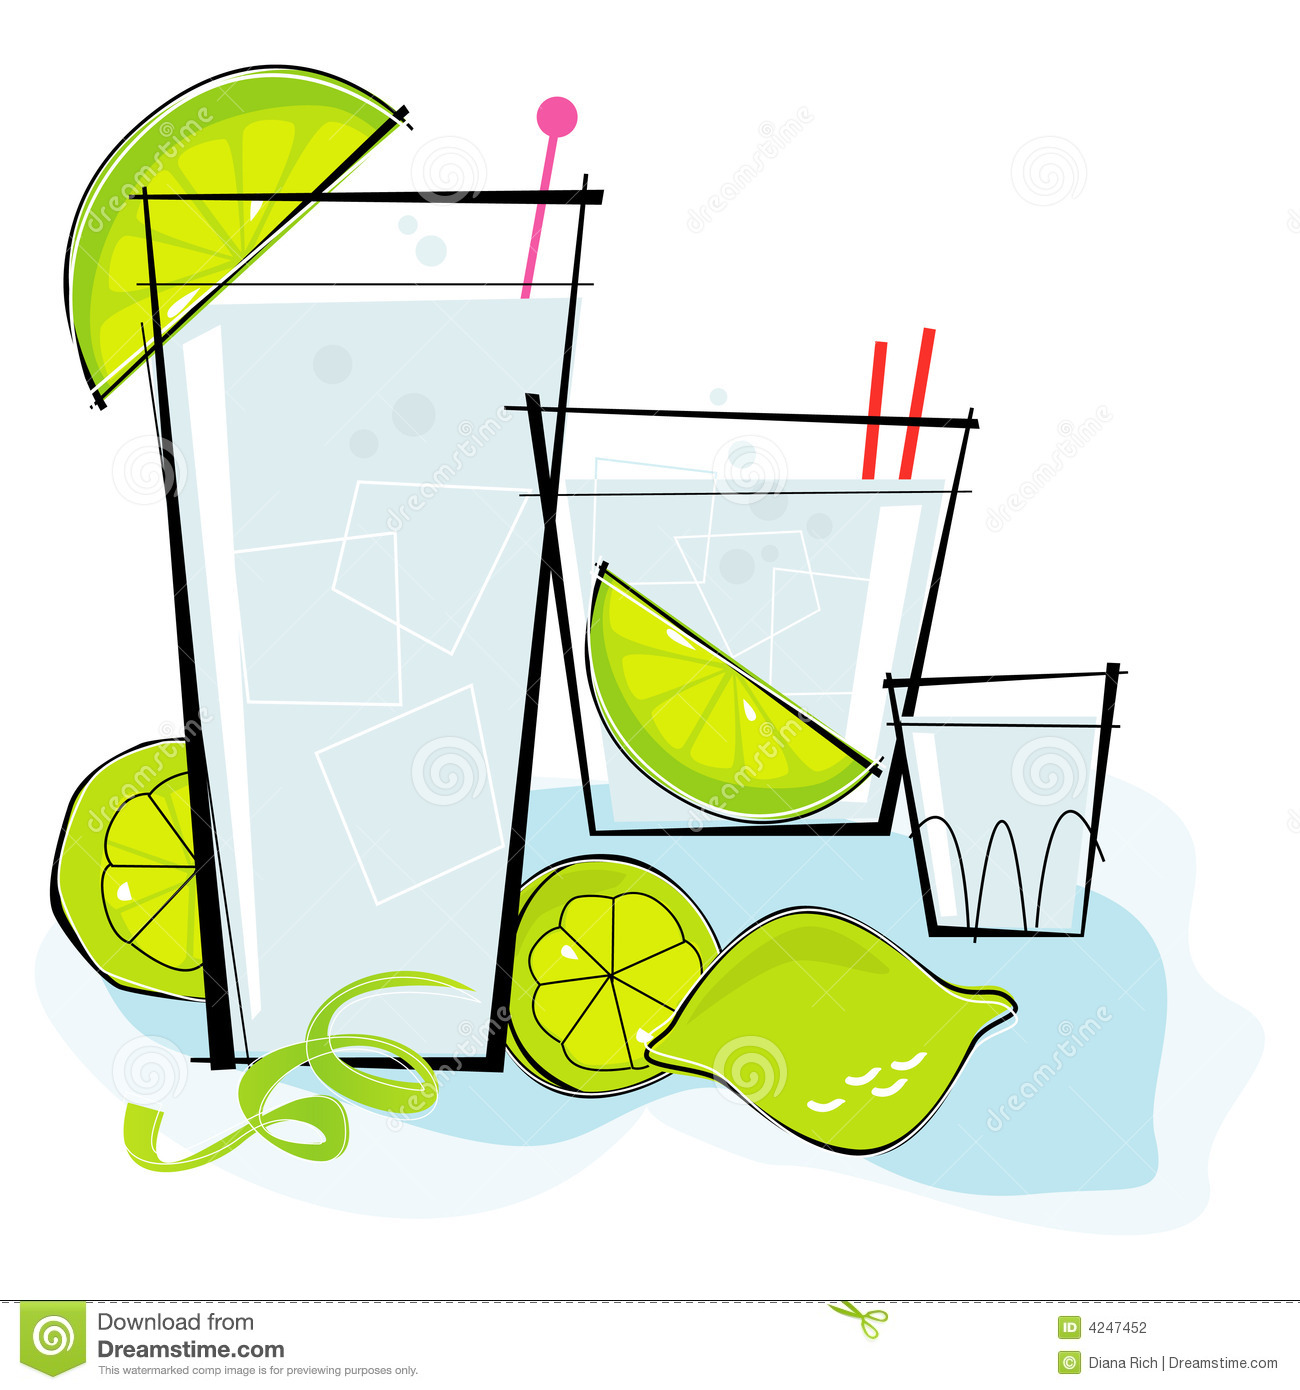 Vodka tonic clipart svg free download Retro-style Vodka Tonic | Clipart Panda - Free Clipart Images svg free download